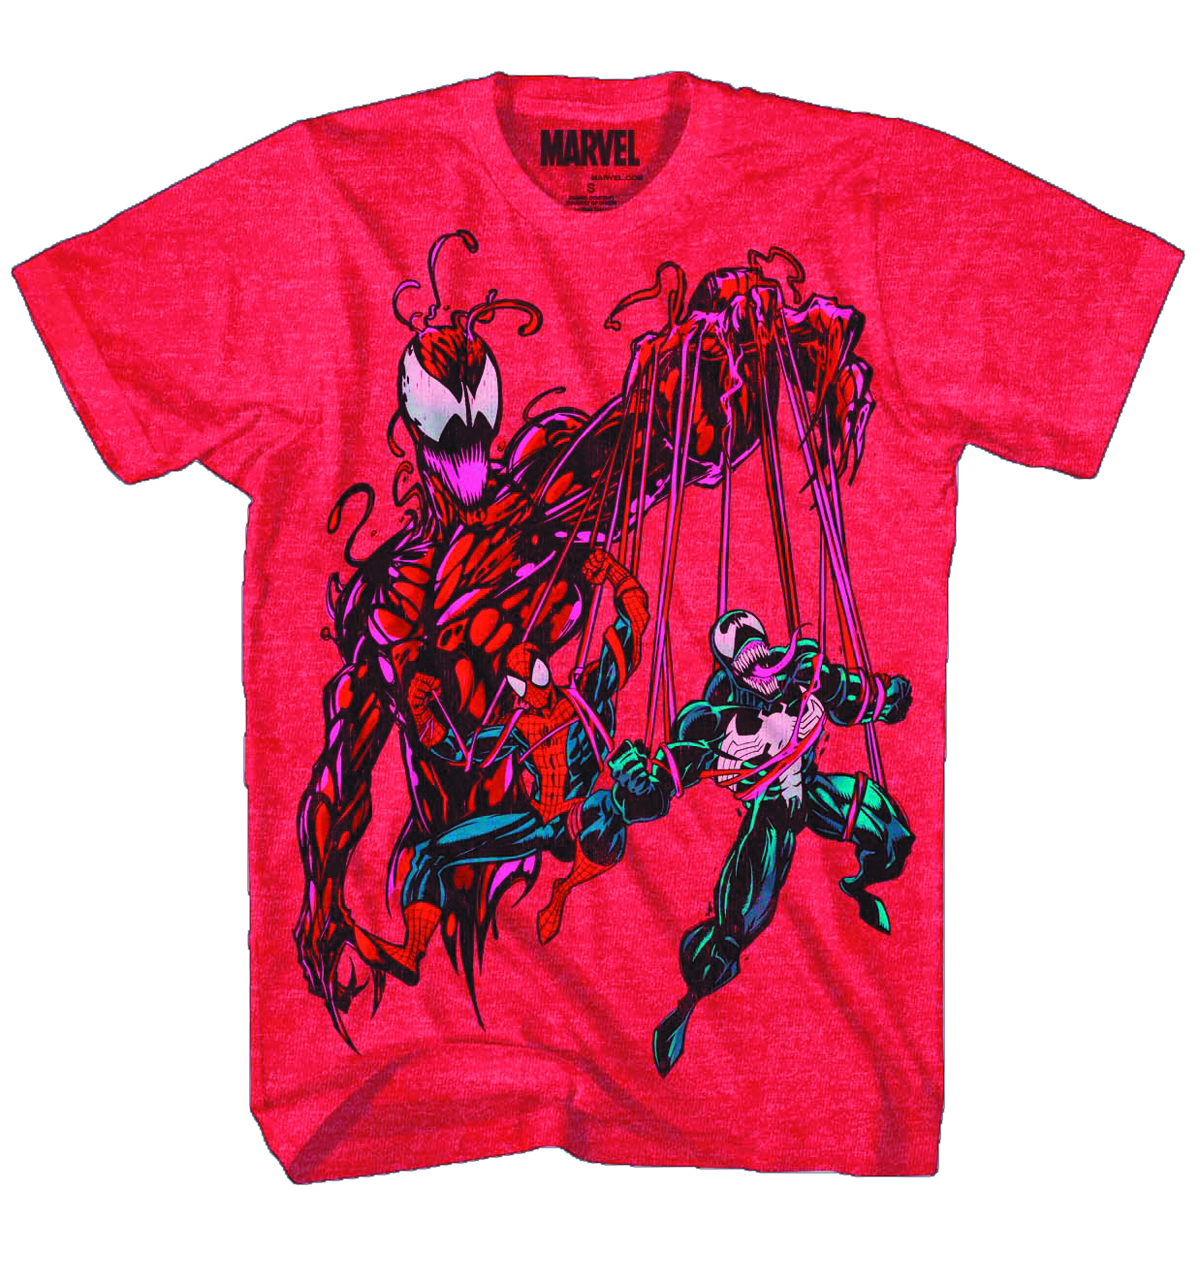 CARNAGE CARNAL PUPPET PX RED HEATHER T/S MED